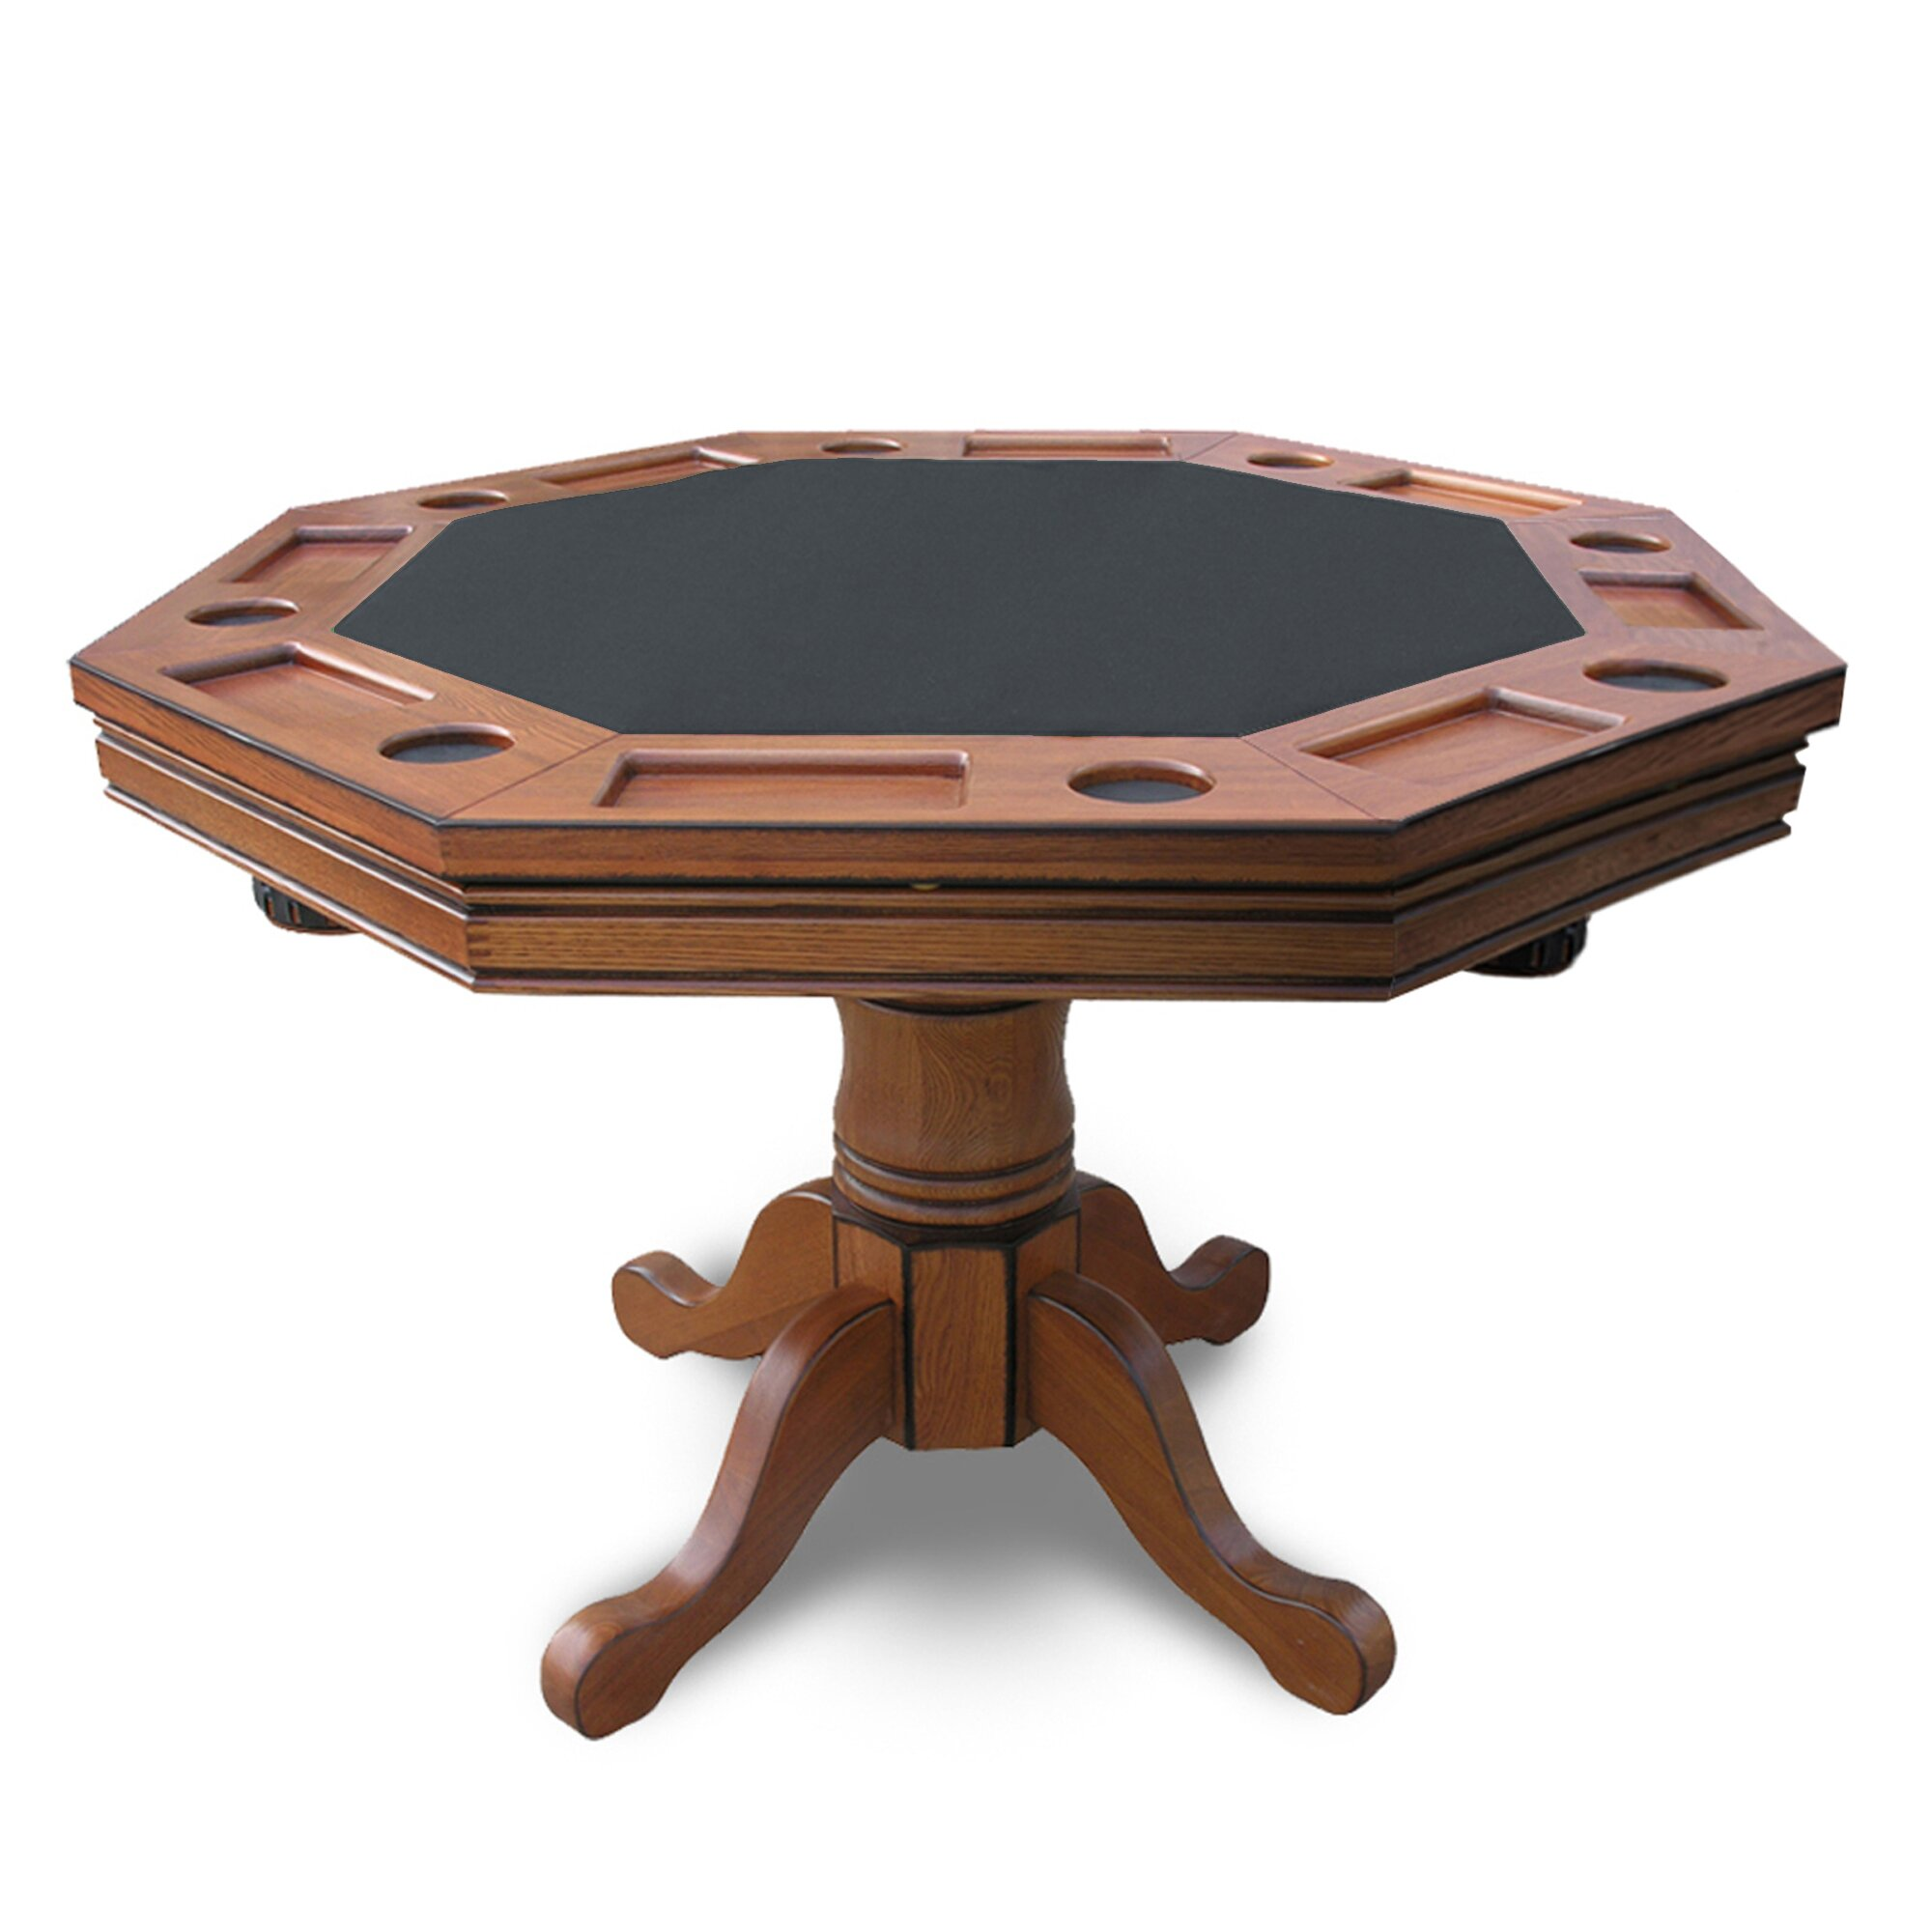 hathaway games kingston in poker table  reviews  wayfair, Dining tables